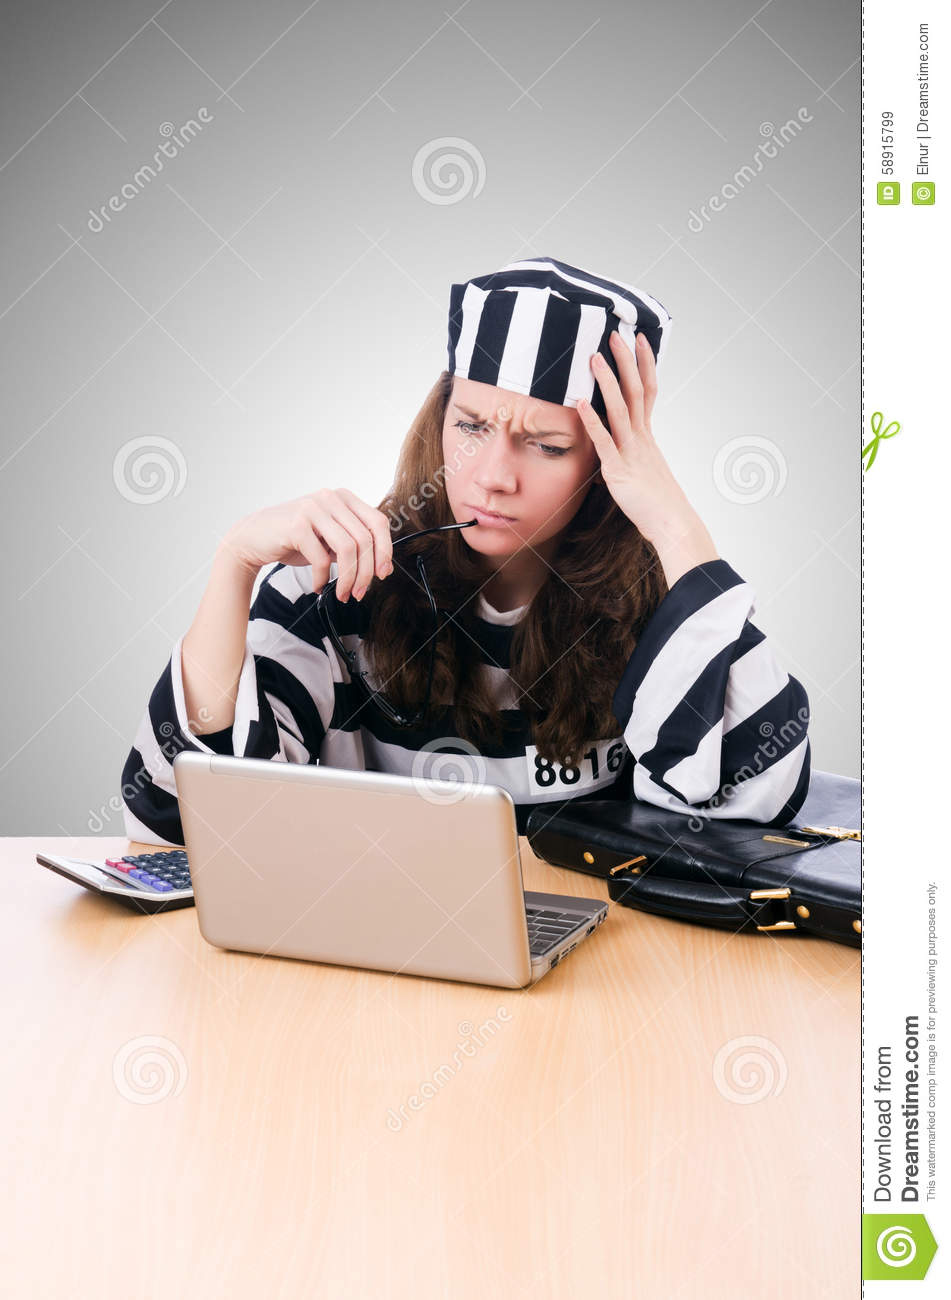 Criminal hacker with laptop against the gradient